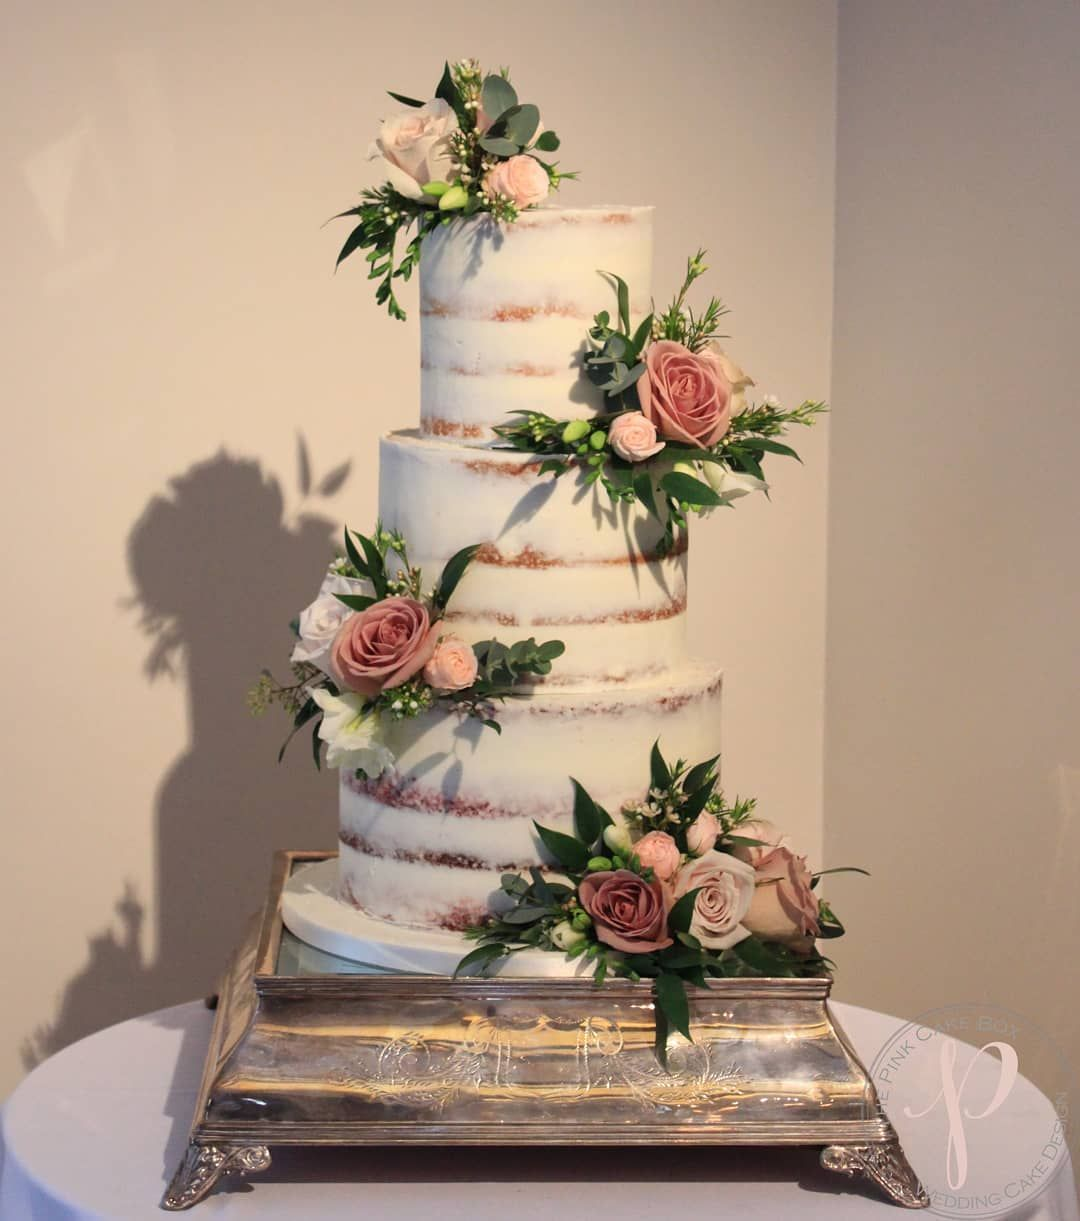 Seminakedweddingcake Hashtag On Instagram Photos And Videos Wedding Cake Cost Wedding Cakes With Flowers Wedding Cake Prices